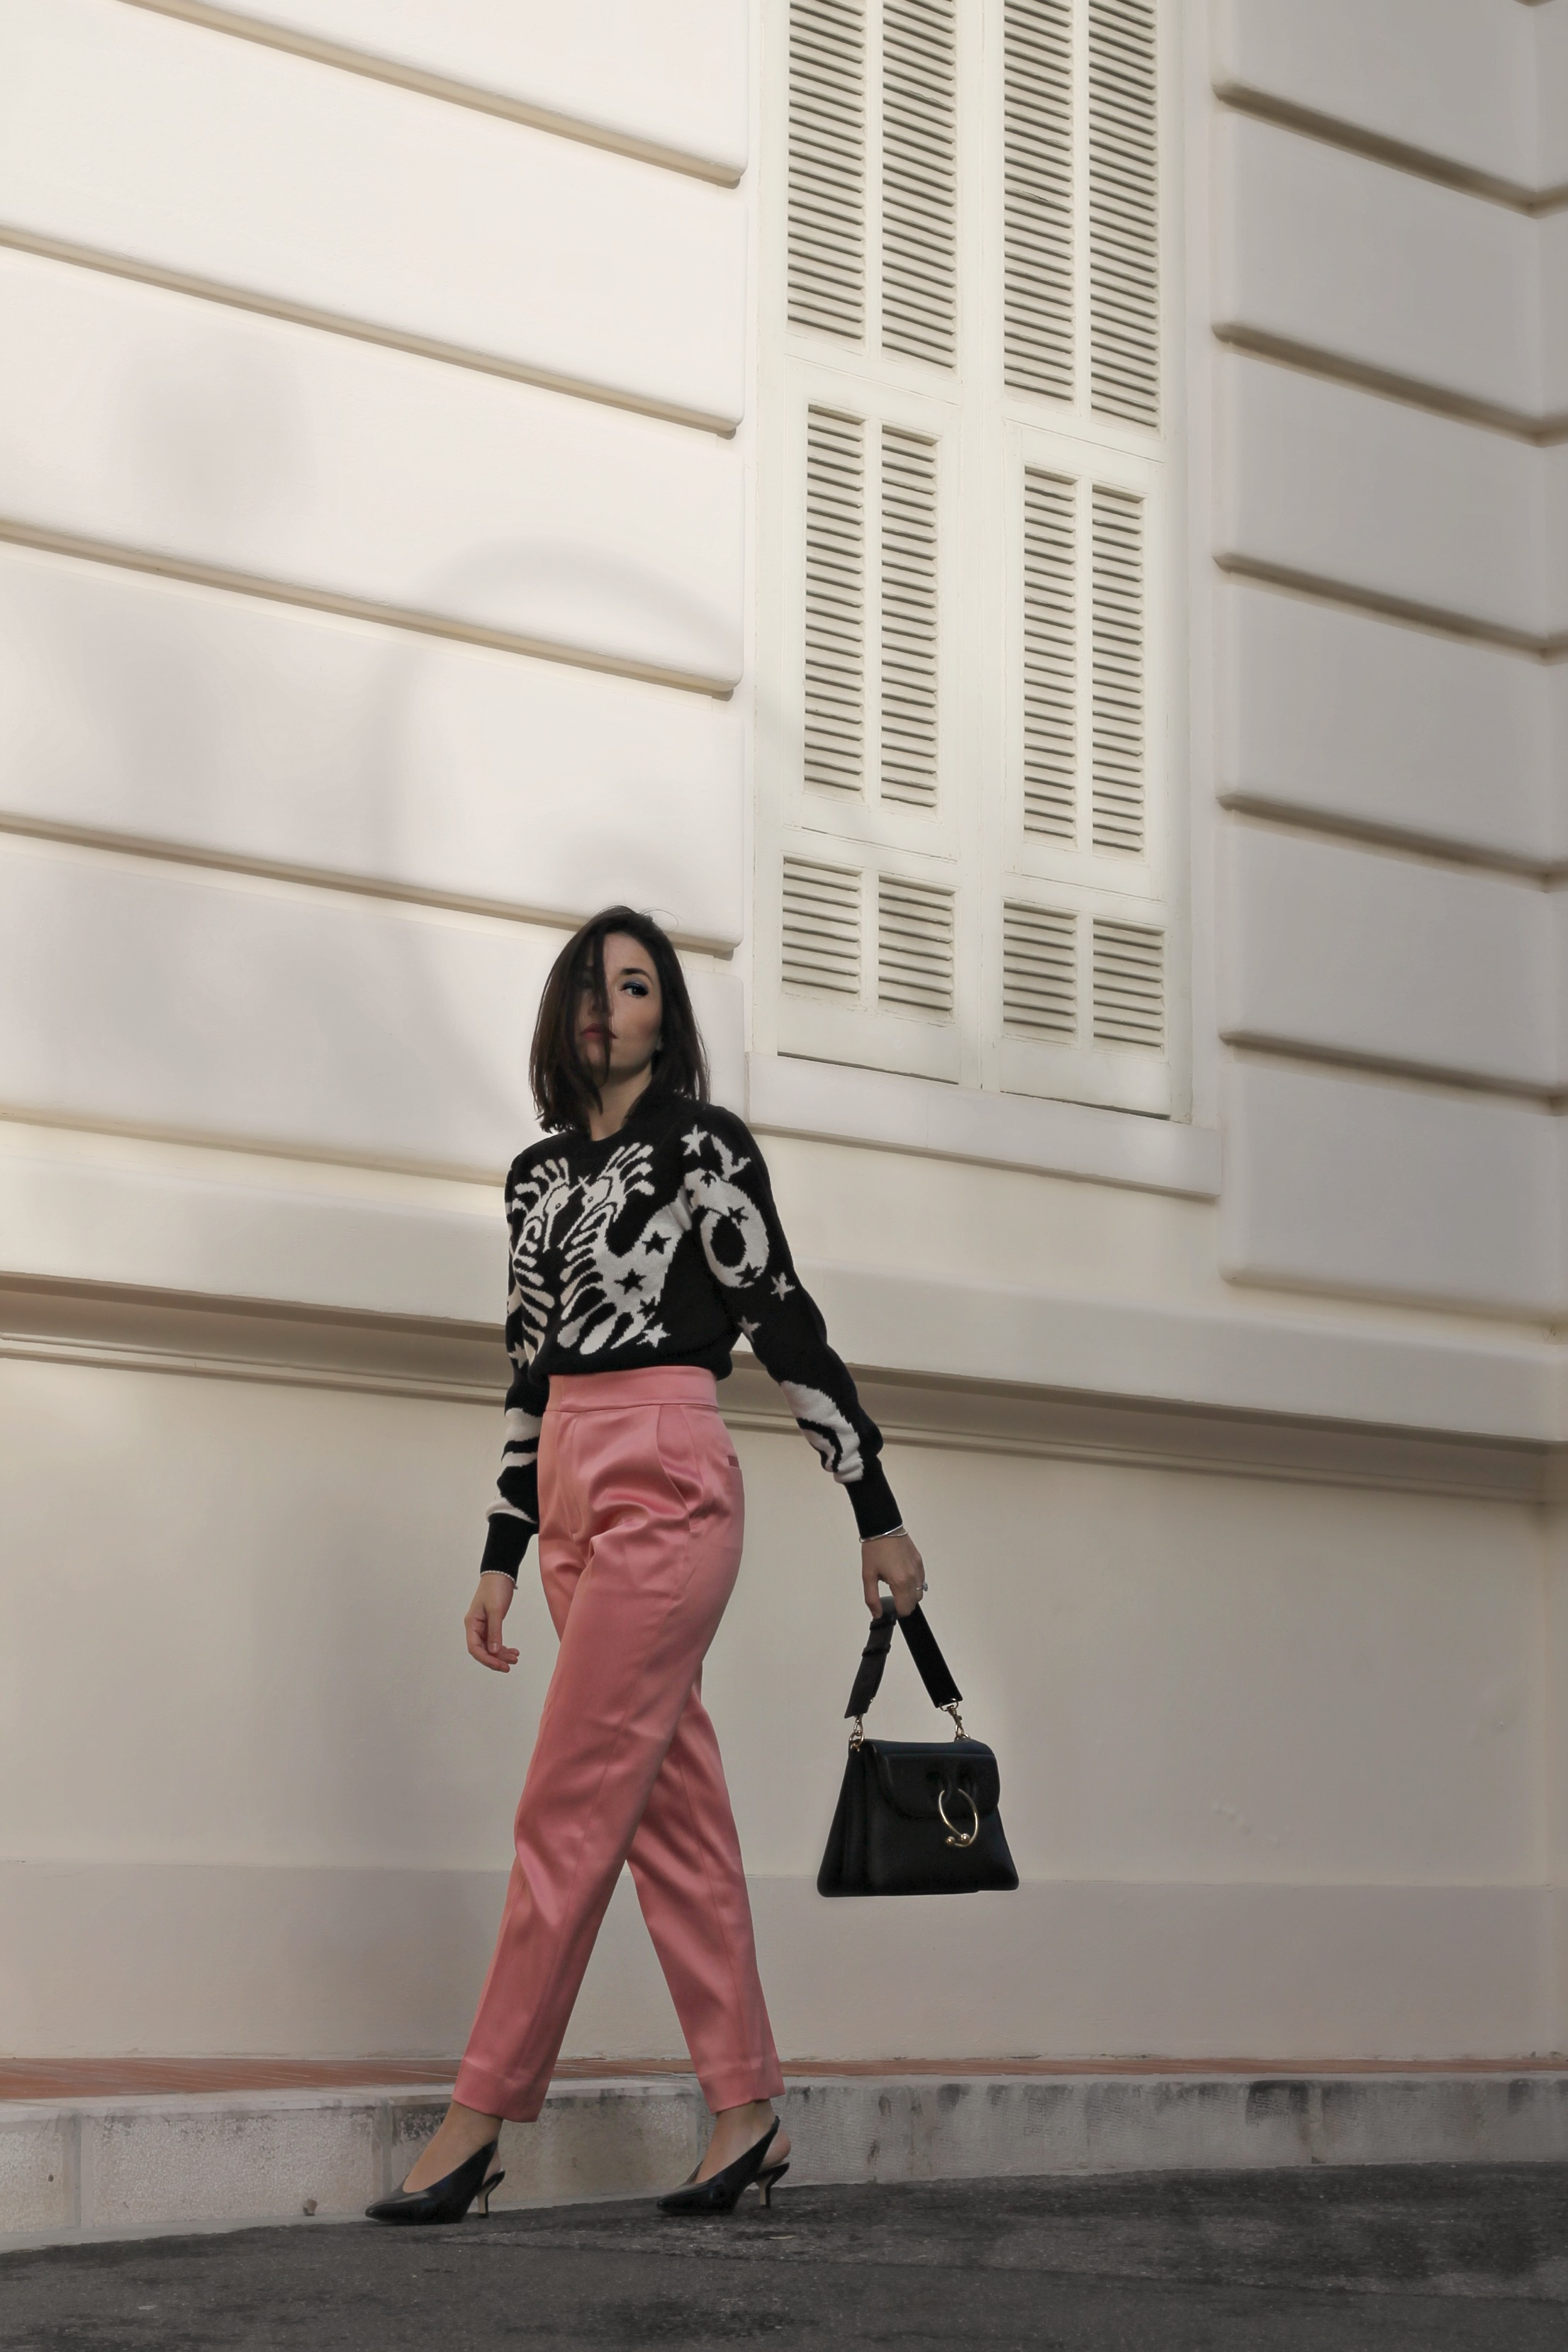 la moda di oggi, theladycracy.it, elisa bellino, fashion blog 2018, fashion blogger famose 2018, fashion blogger più seguite 2018, blogger moda 2018, blogger instagram 2018, jw anderson pierce bag, maglione otherstories, look casual chic 2018, come vestirsi bene 2018, cosa mi metto domani 2018, pantaloni rosa abbinare, mules zara